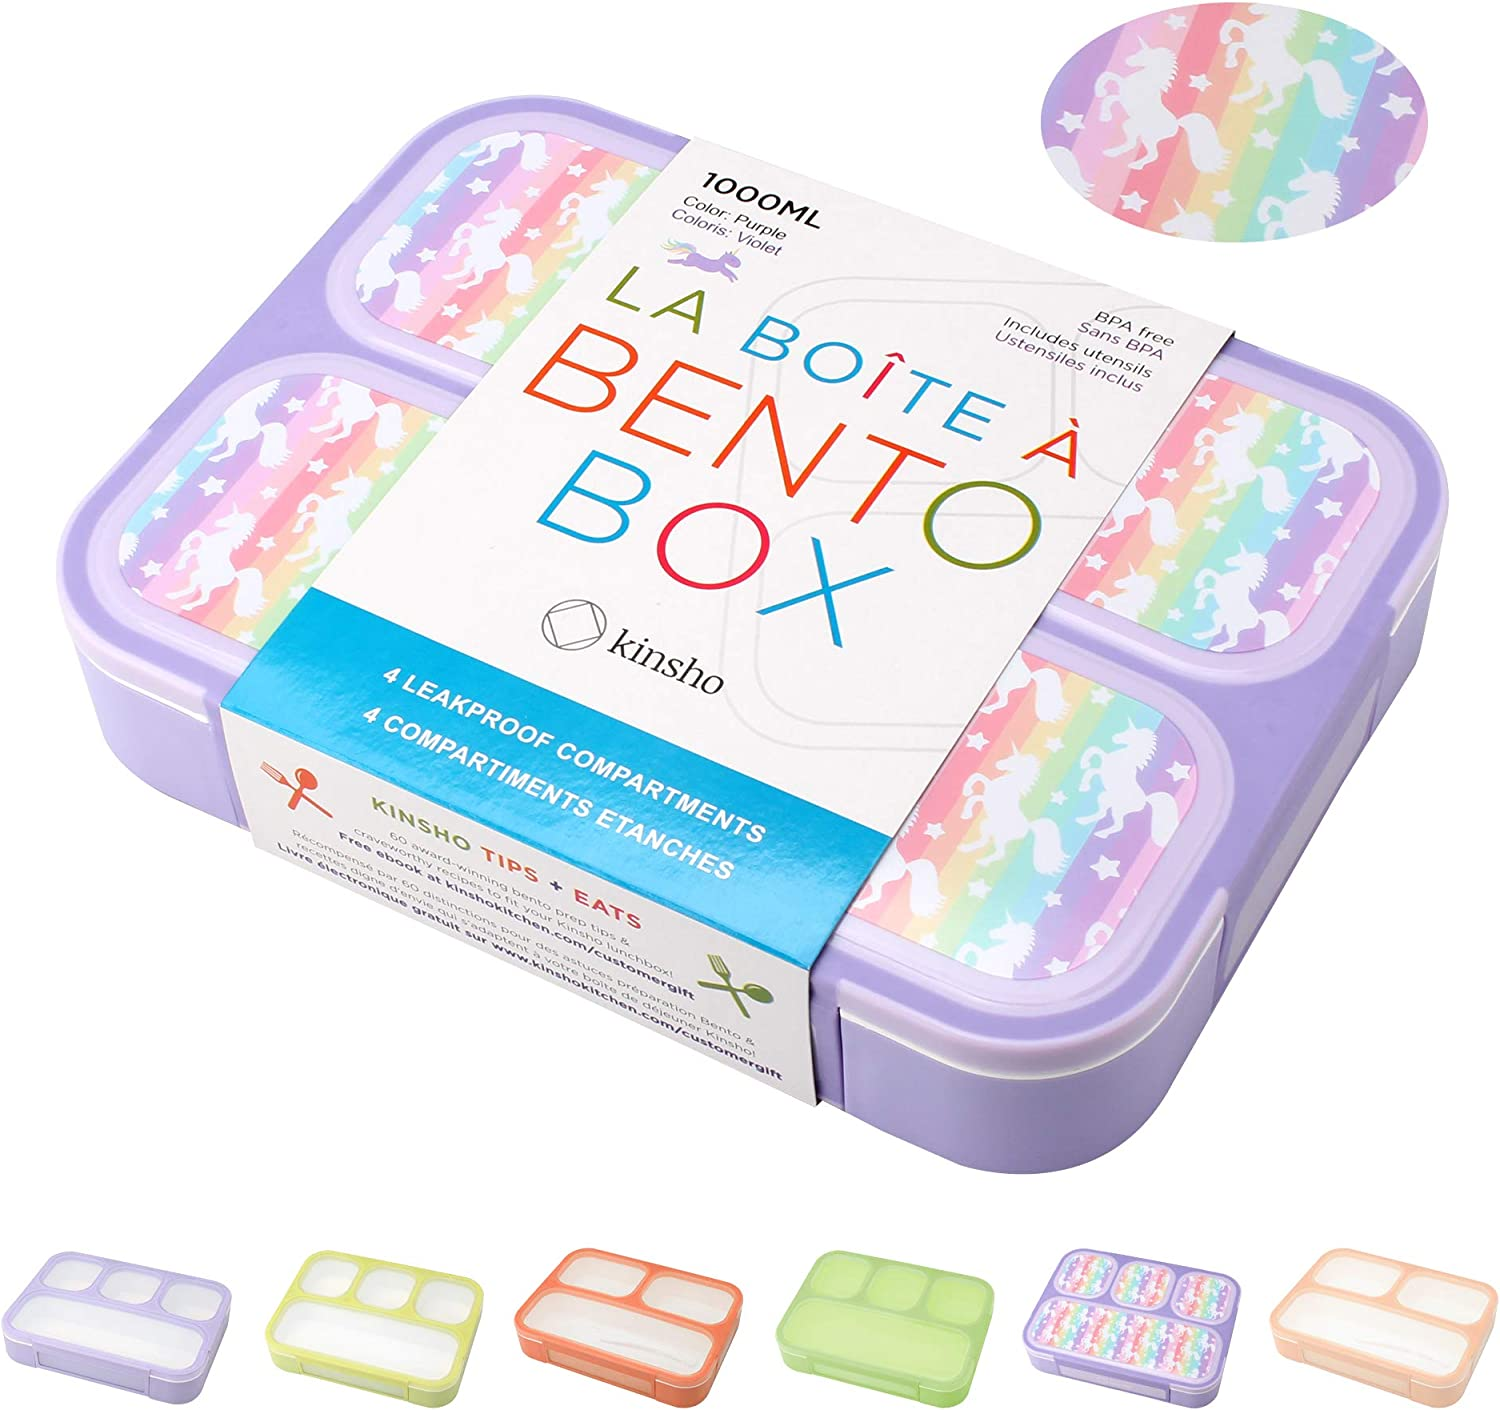 Unicorn Bento Lunch Box for Girls, Kids | Snack Containers with 4 Compartment Dividers, Boxes for Toddlers Pre-School Daycare Tween Lunches BPA Free, Food and Microwave Safe | Purple Rainbow Unicornio